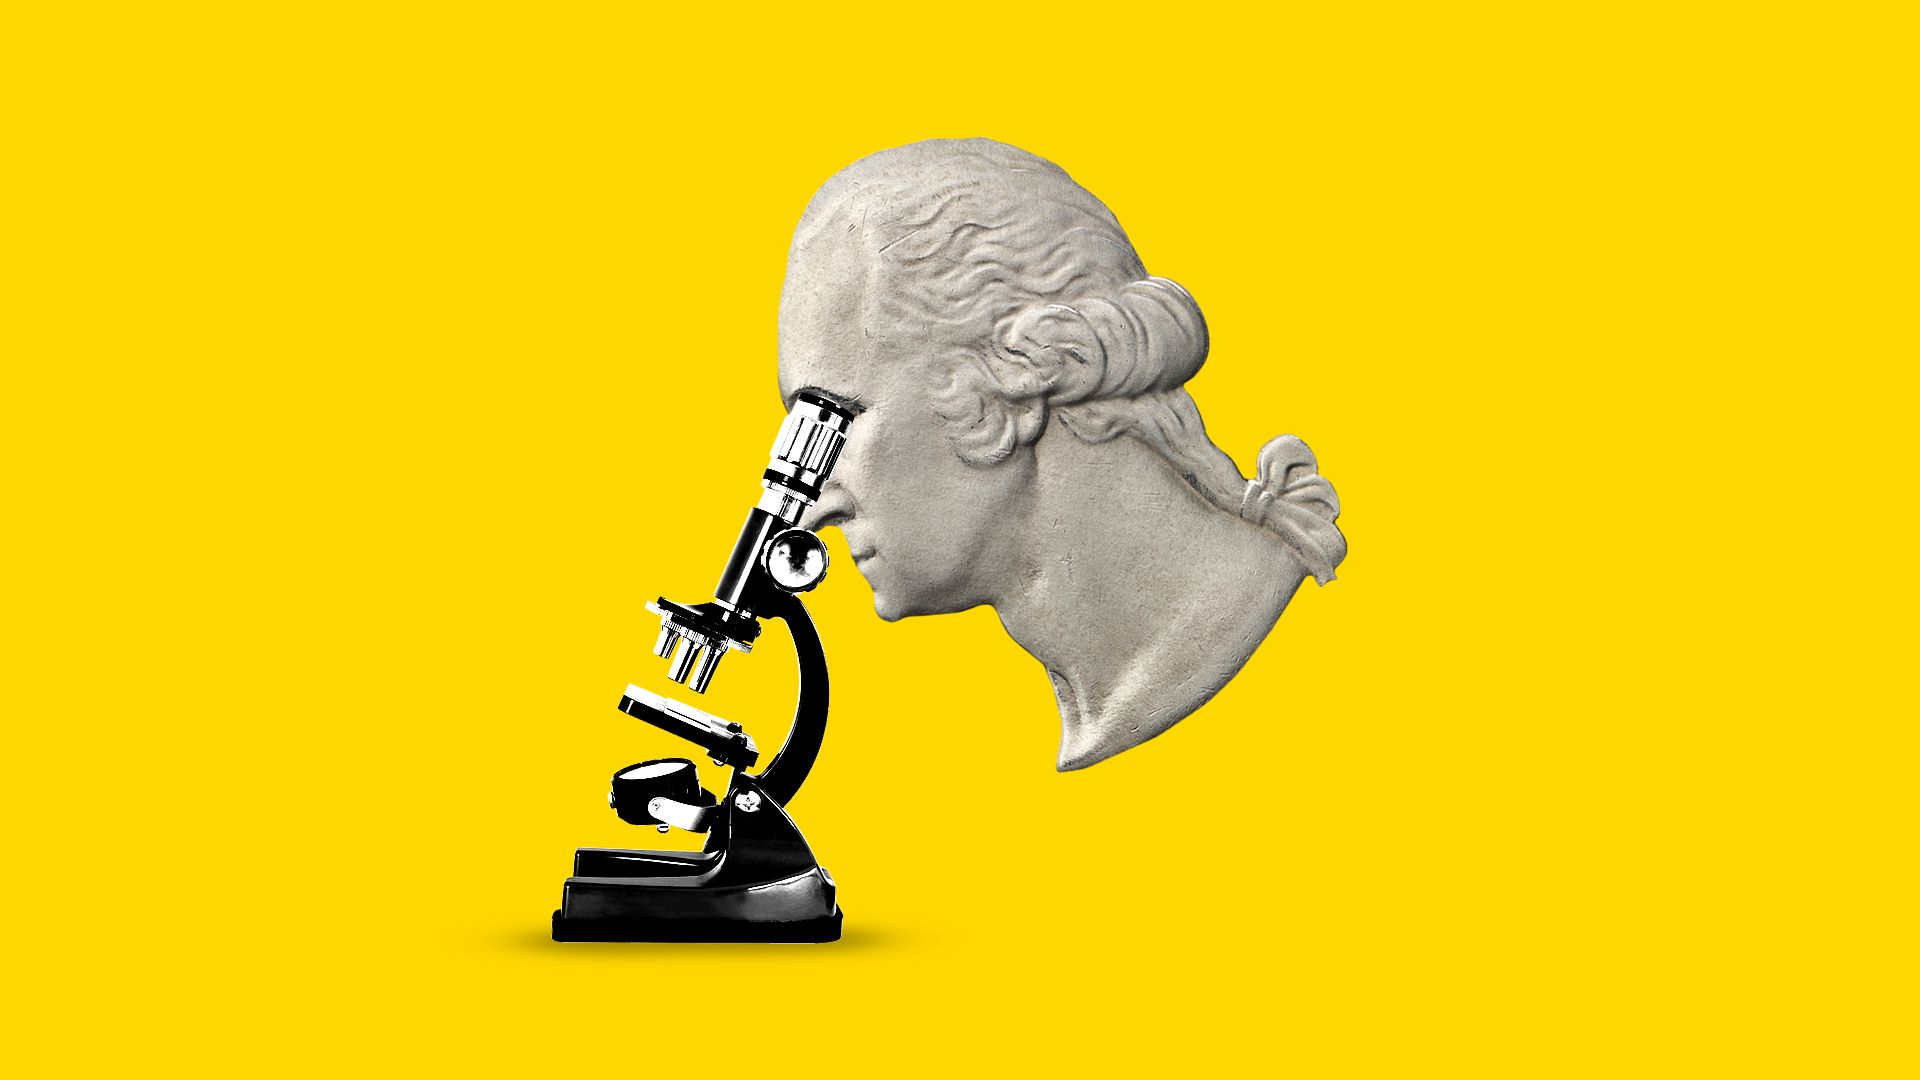 Illustration of George Washington from a quarter looking into a microscope